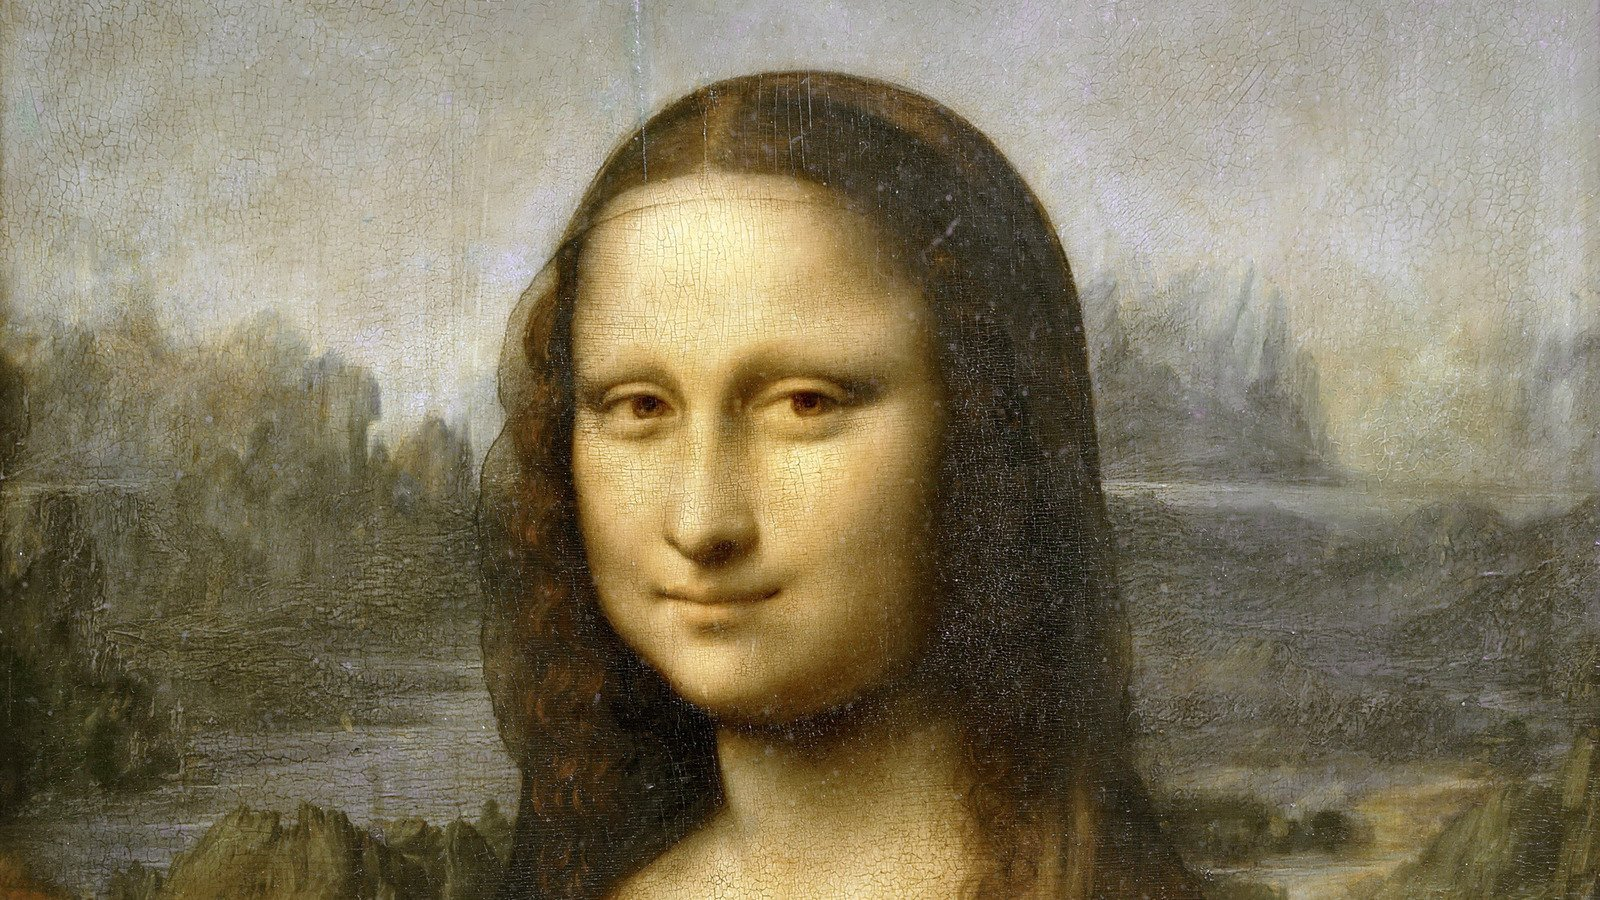 Things The Da Vinci Code Gets Right About Religion